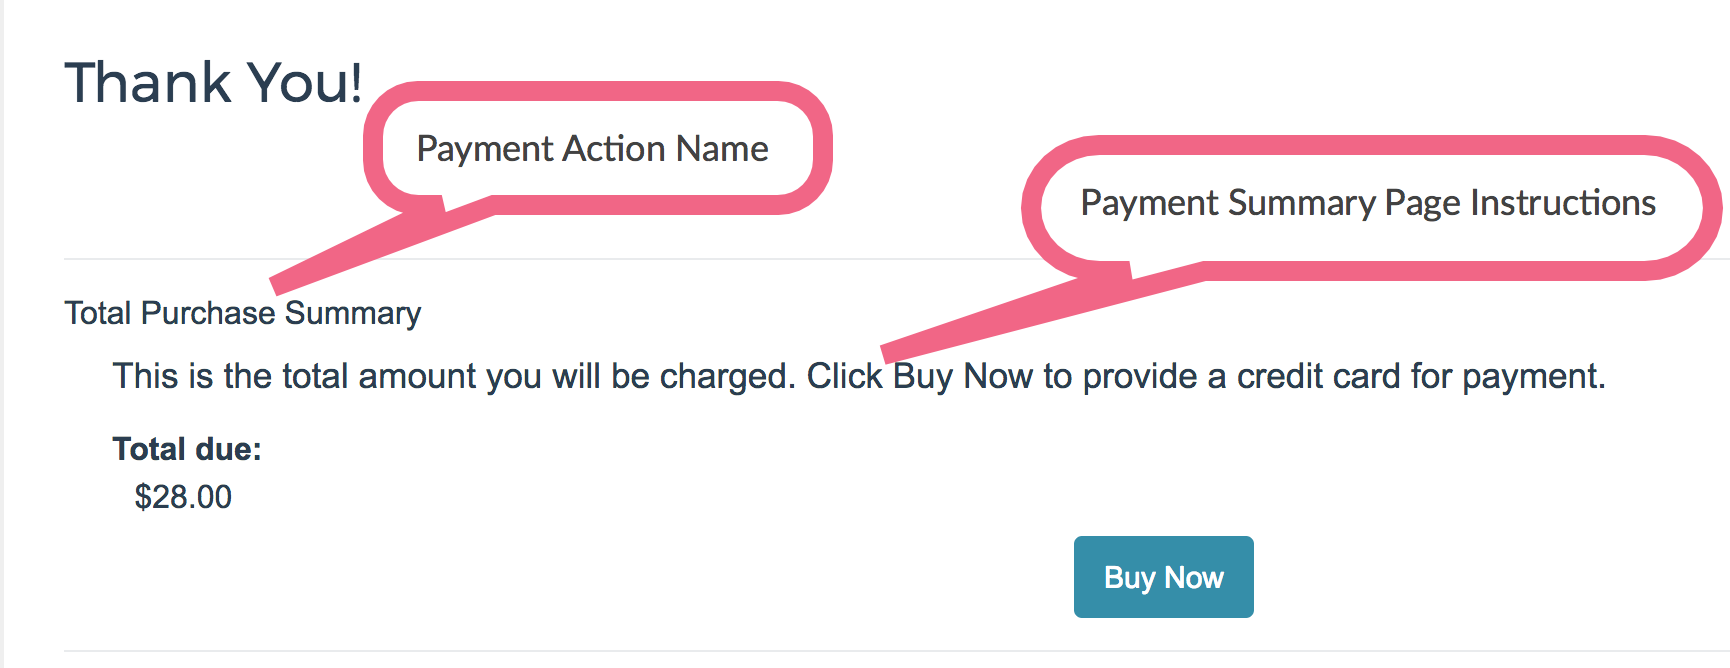 Payment Action Name and Summary Page Instructions